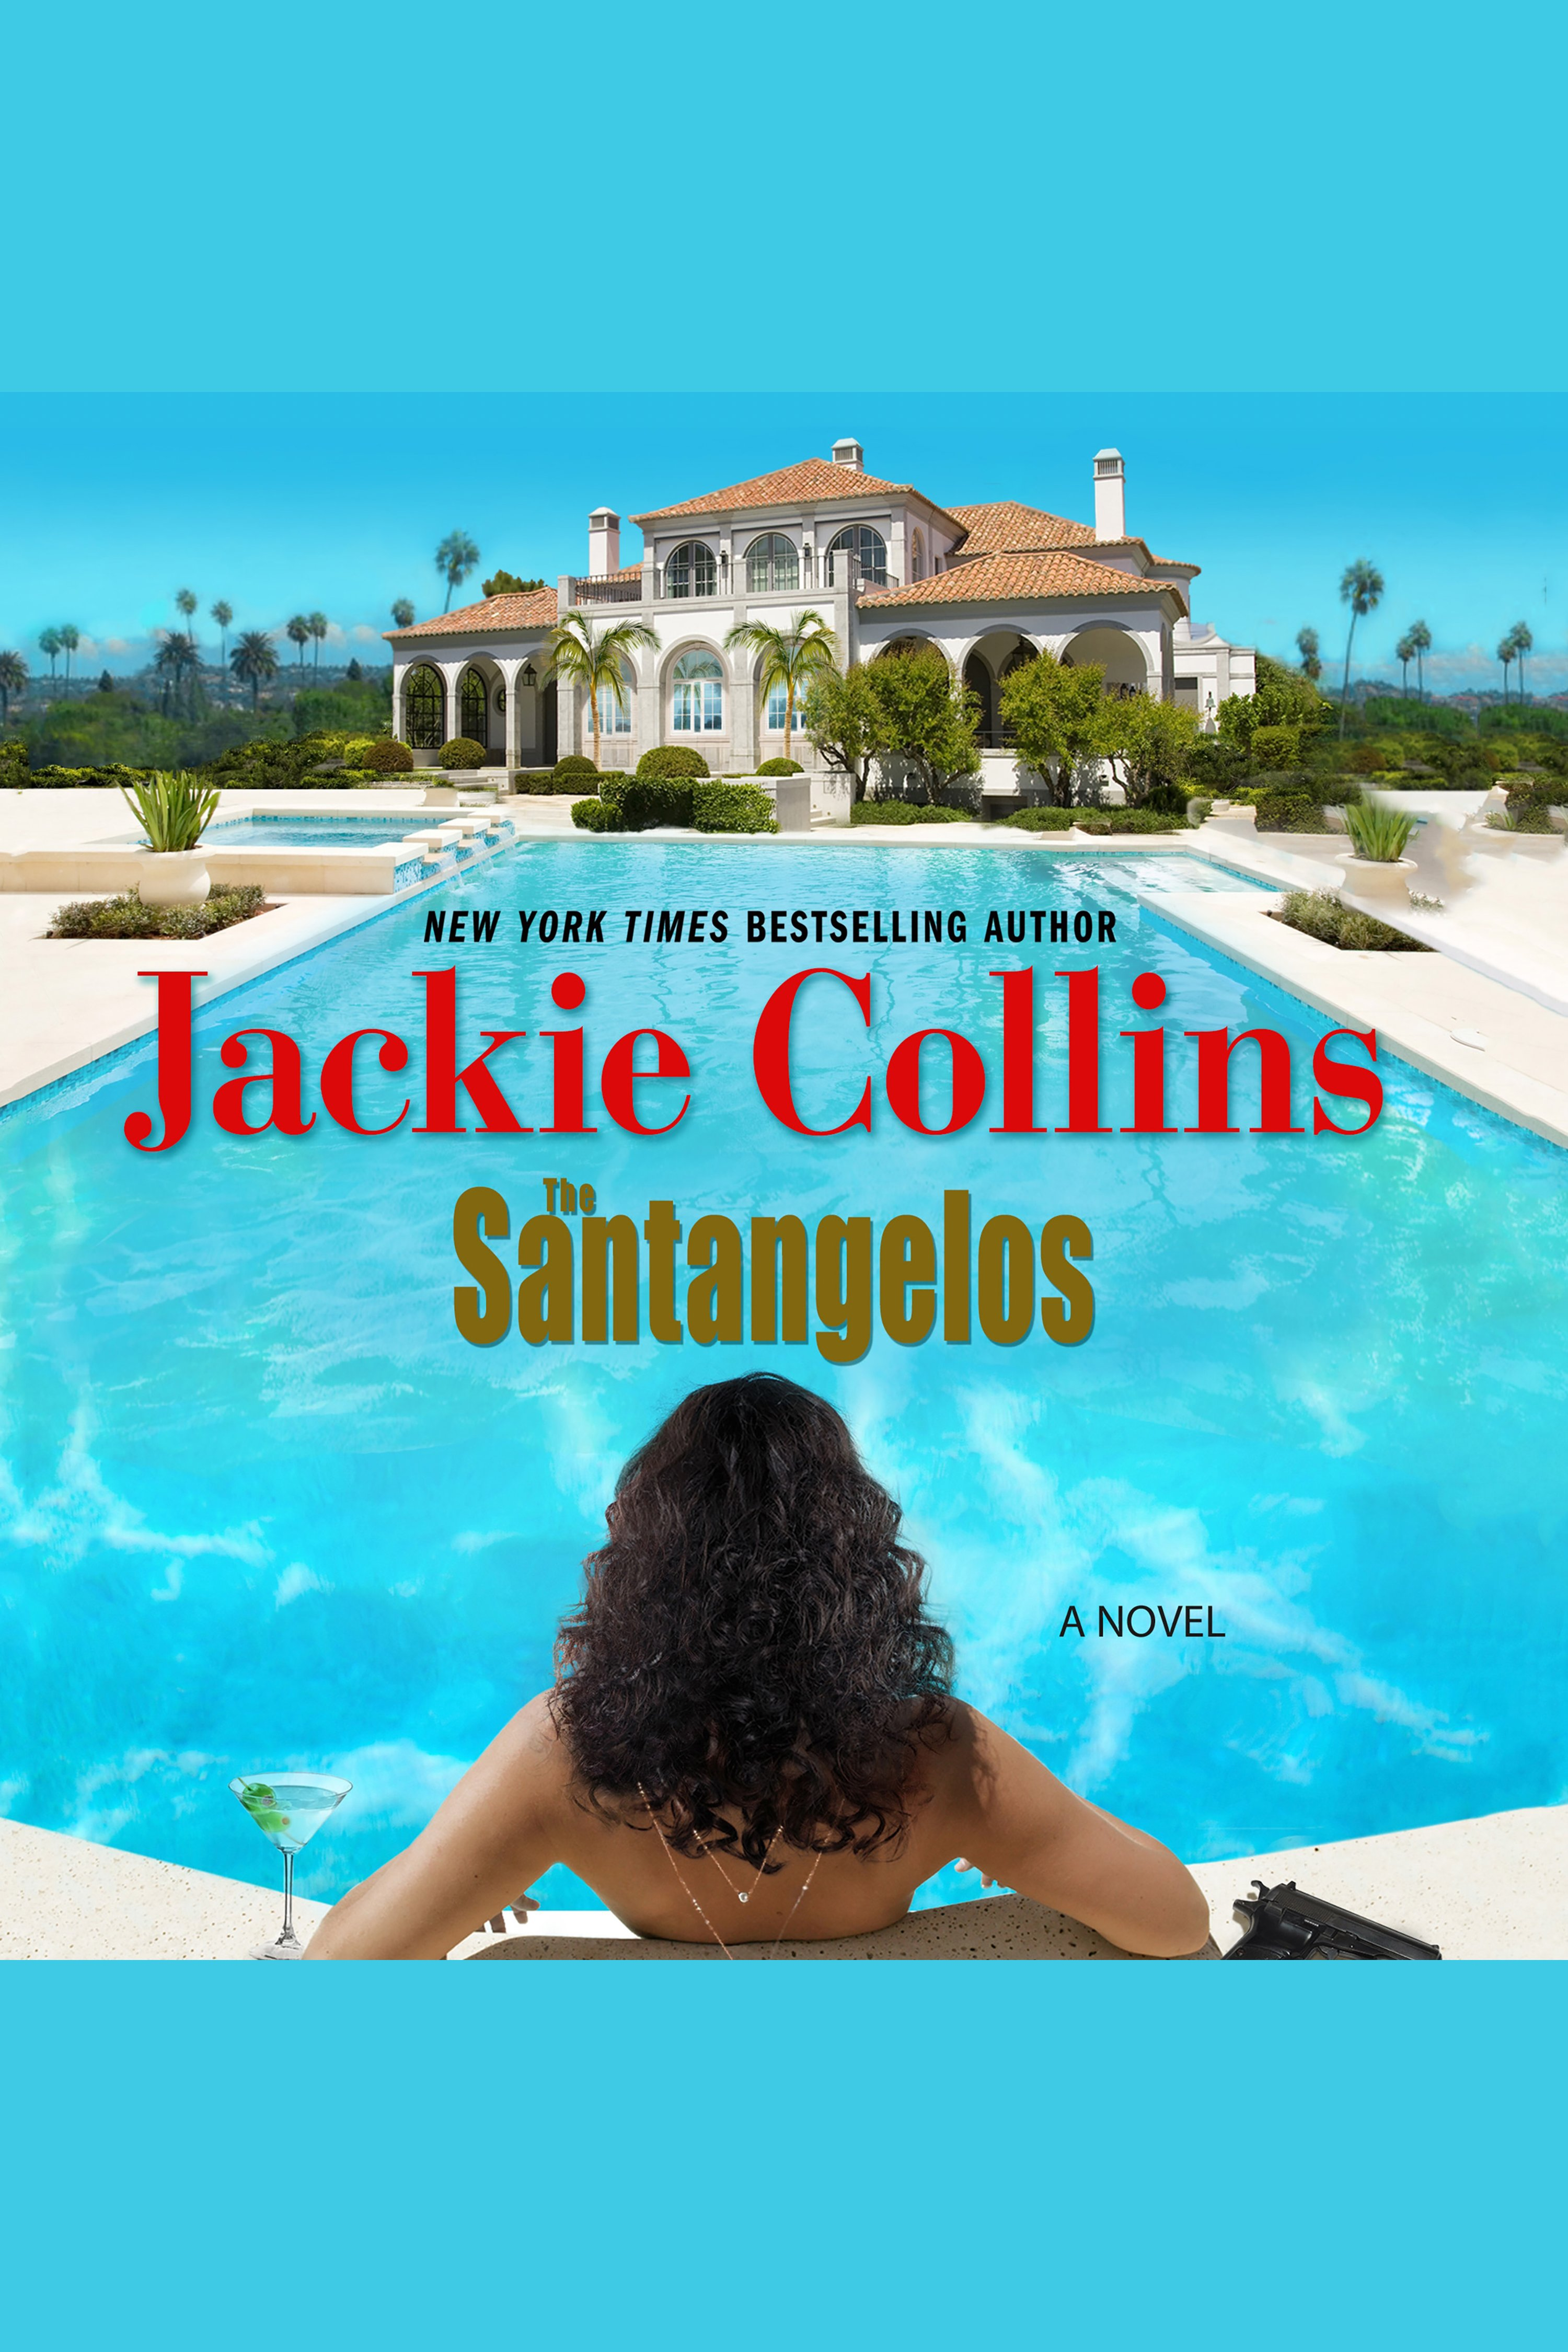 The Santangelos cover image